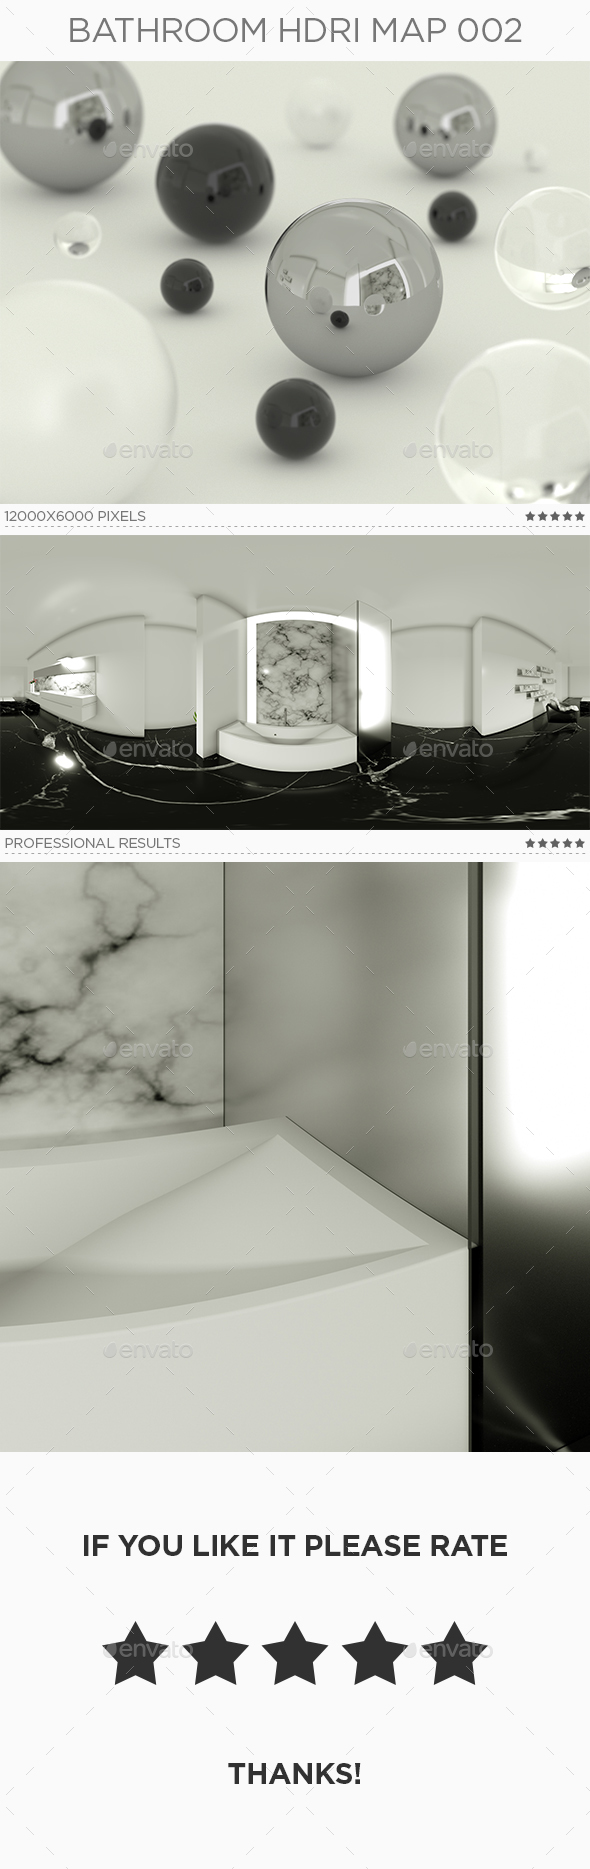 Bathroom HDRi Map 002 - 3DOcean Item for Sale